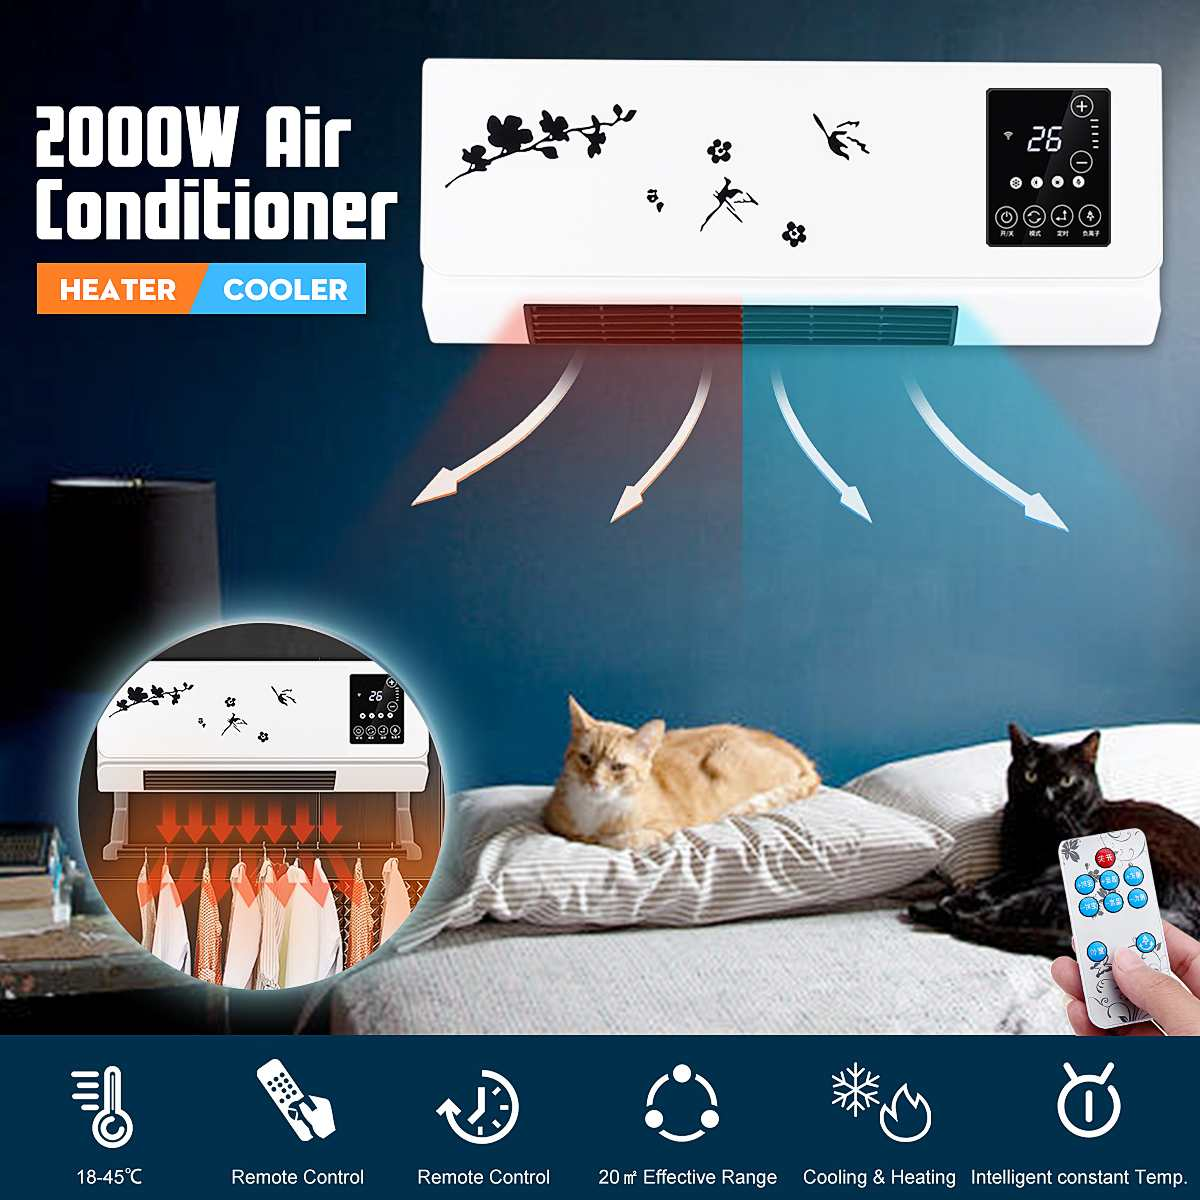 2000W Heating And Cooling Air Conditioner Wall And Desktop 2 Install Method LED Touch Screen Electric Air Heater Clothing Dryer